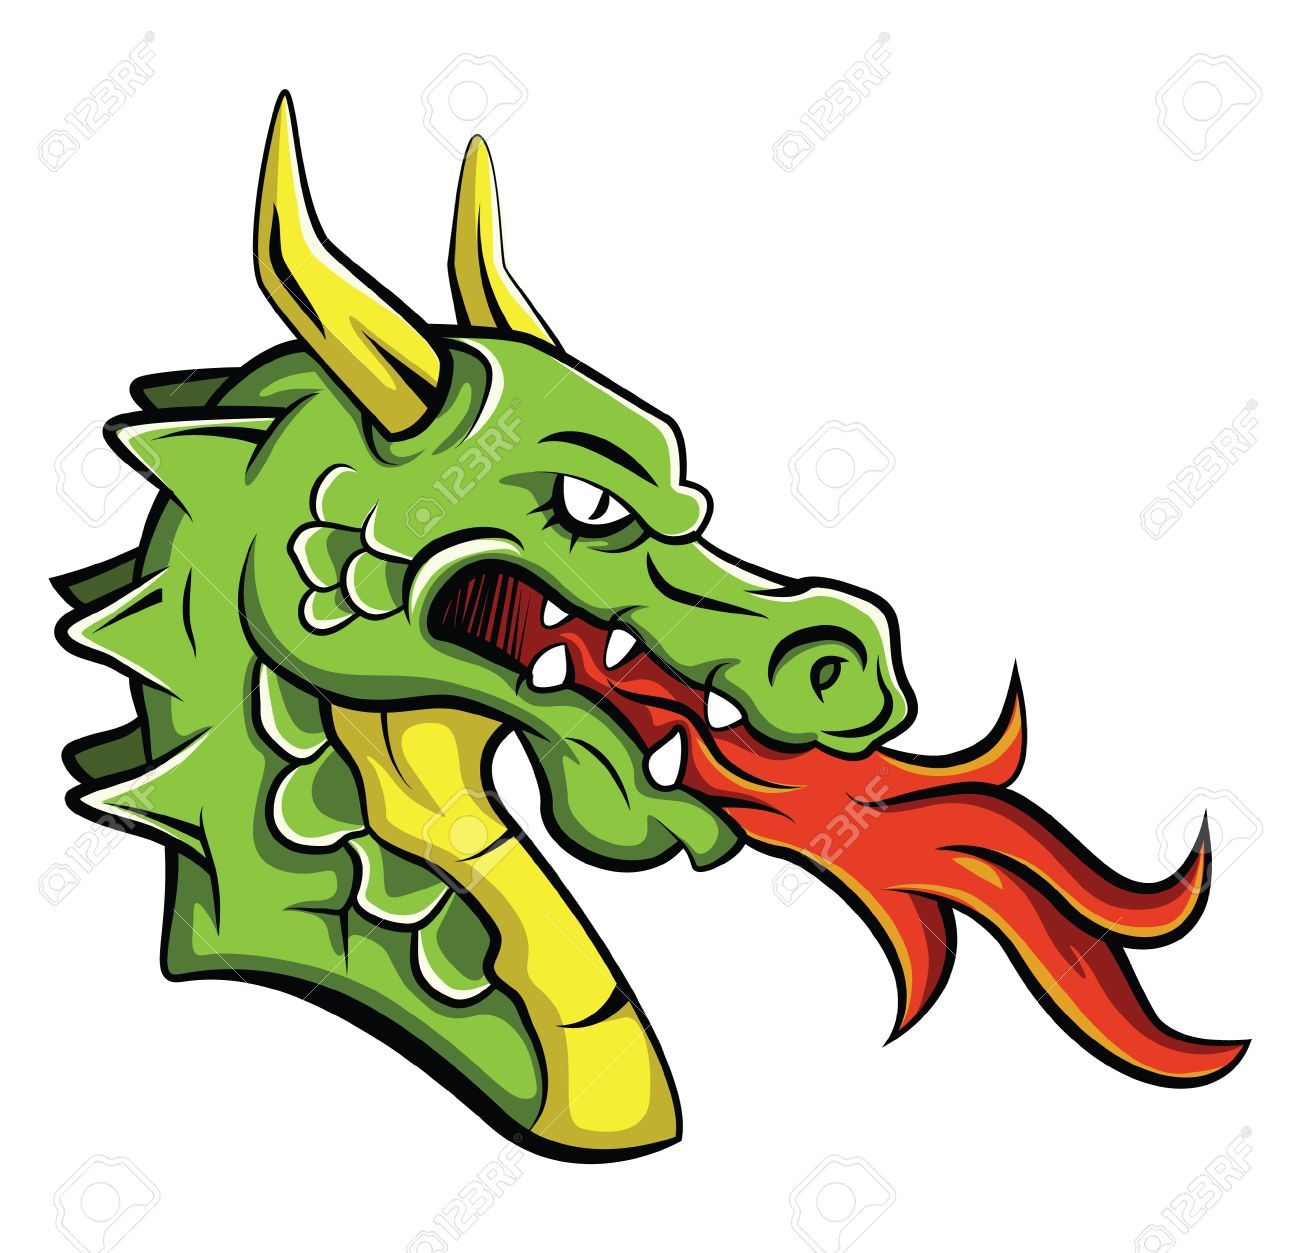 dragon head royalty free cliparts vectors and stock illustration rh 123rf com free clipart of dragon head chinese dragon head clip art